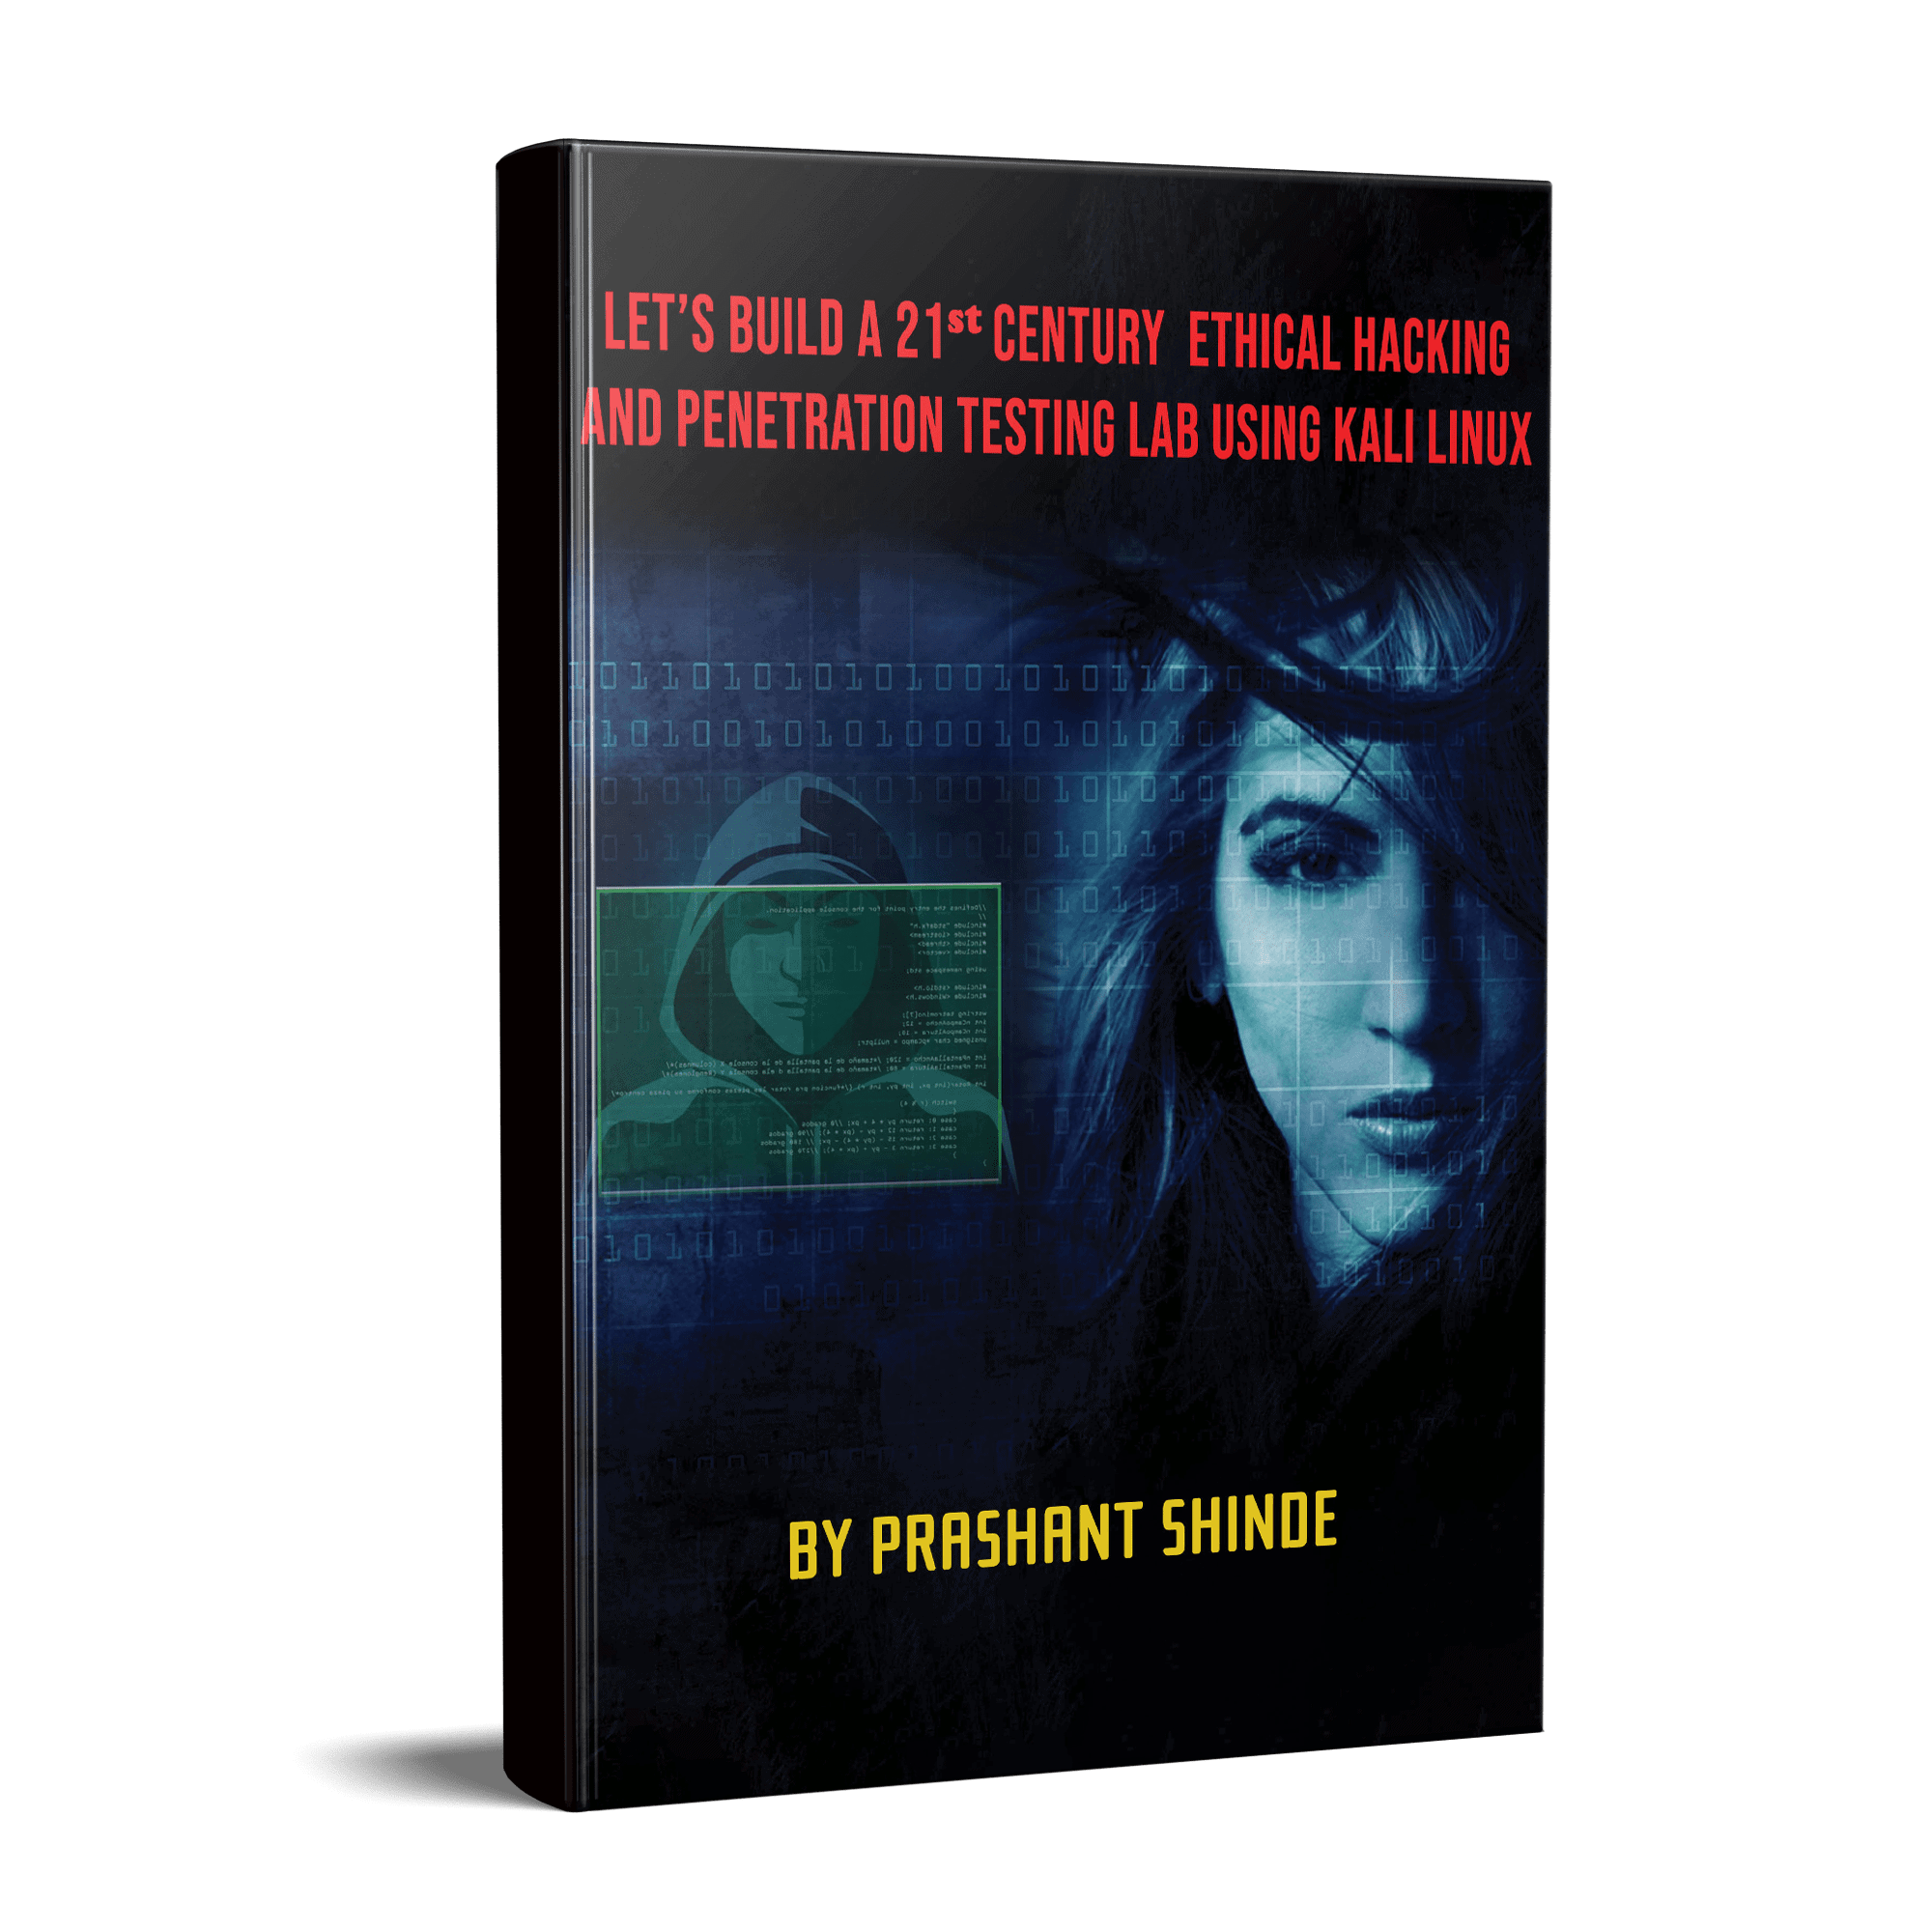 Ebook on Ethical Hacking